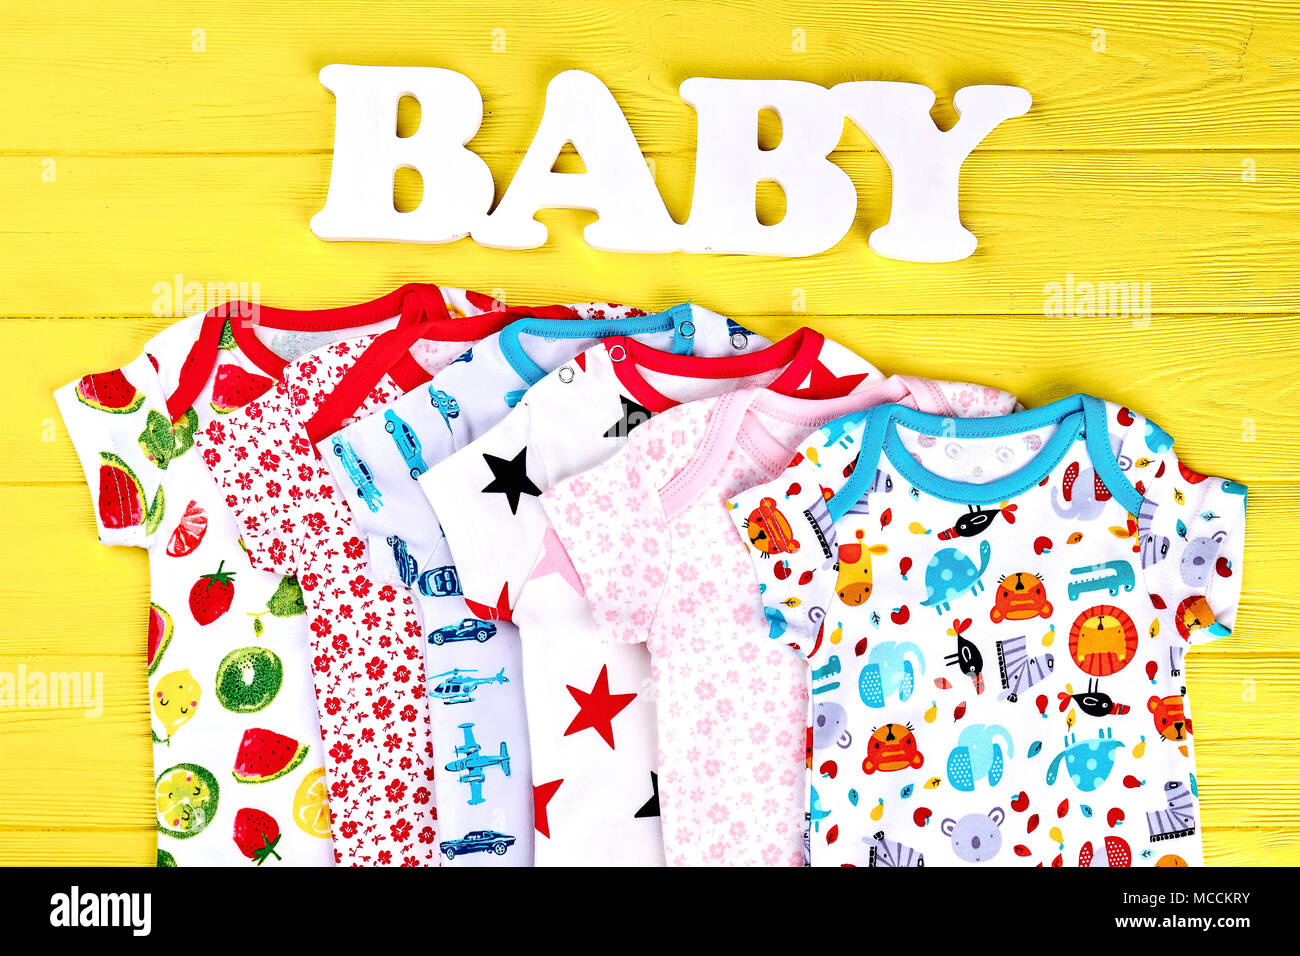 6c2a4d28a Baby soft fashion clothes background. Infants collection of rompers, word  baby on yellow wooden background.